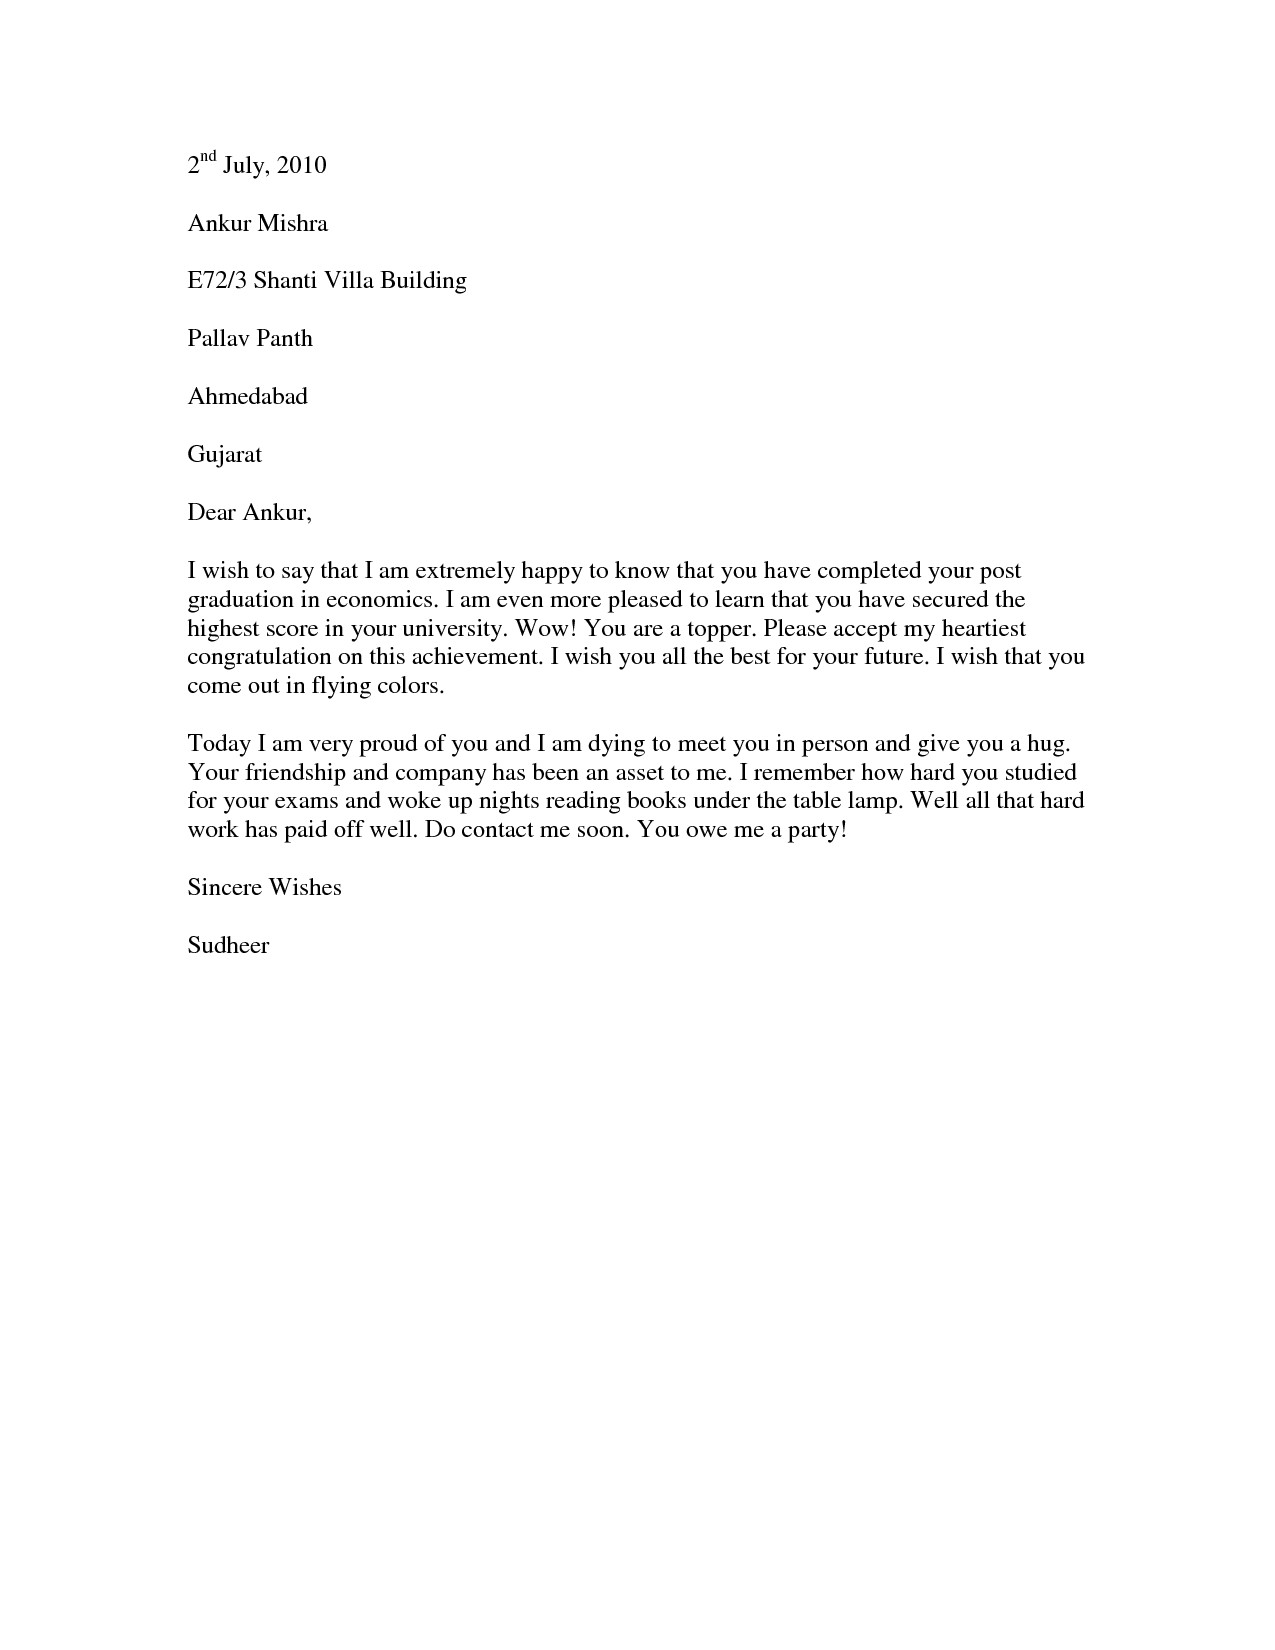 recognition congratulations letter sample retirement recognition graduation congratulations letter example of a congratulations letter to send to a college graduate who